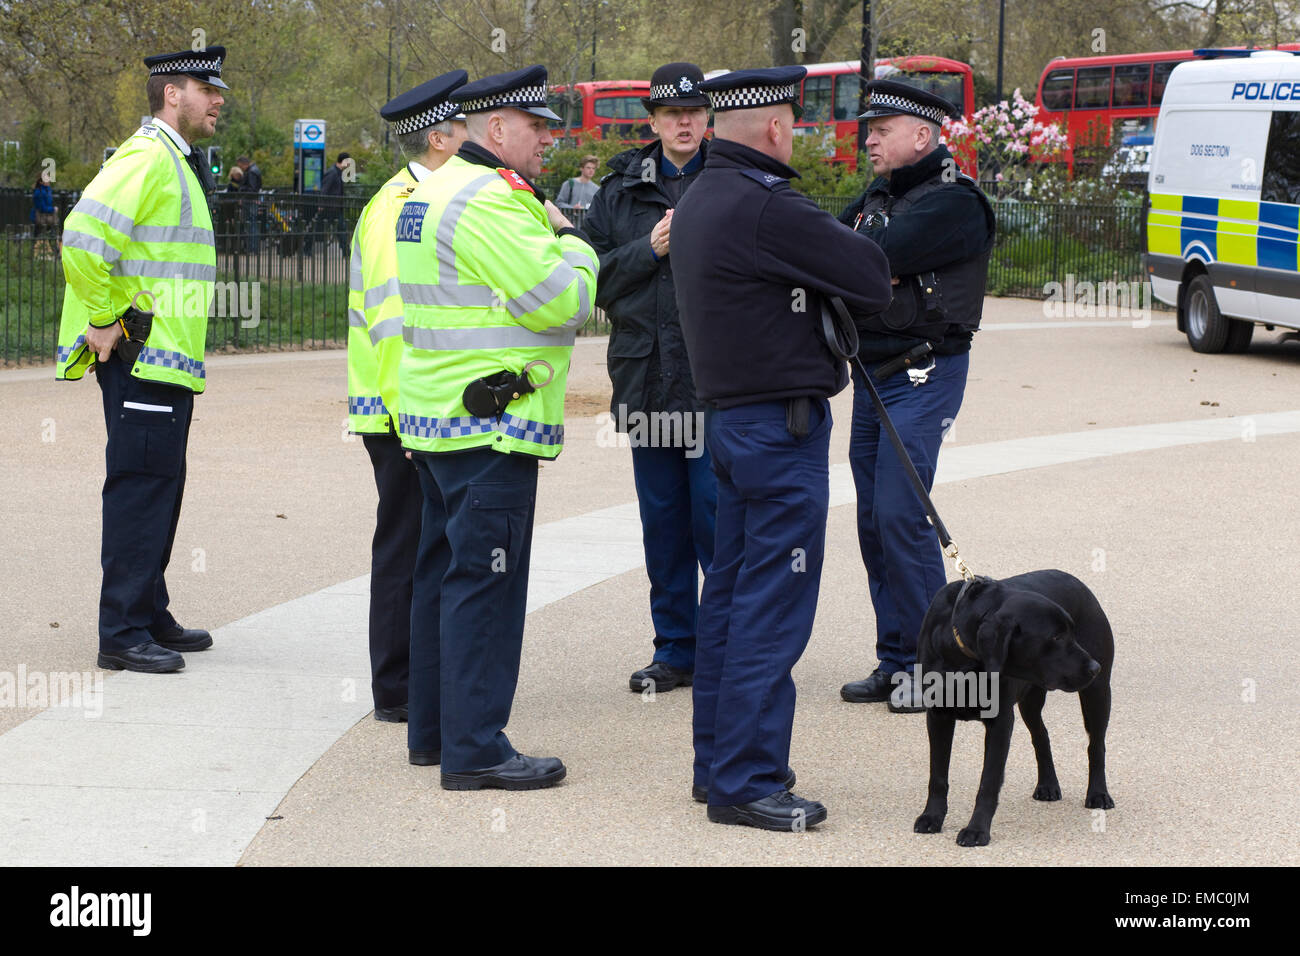 Police officers in Hyde Park London on Patrol Looking for people in Possession of Cannabis with a sniffer dog - Stock Image